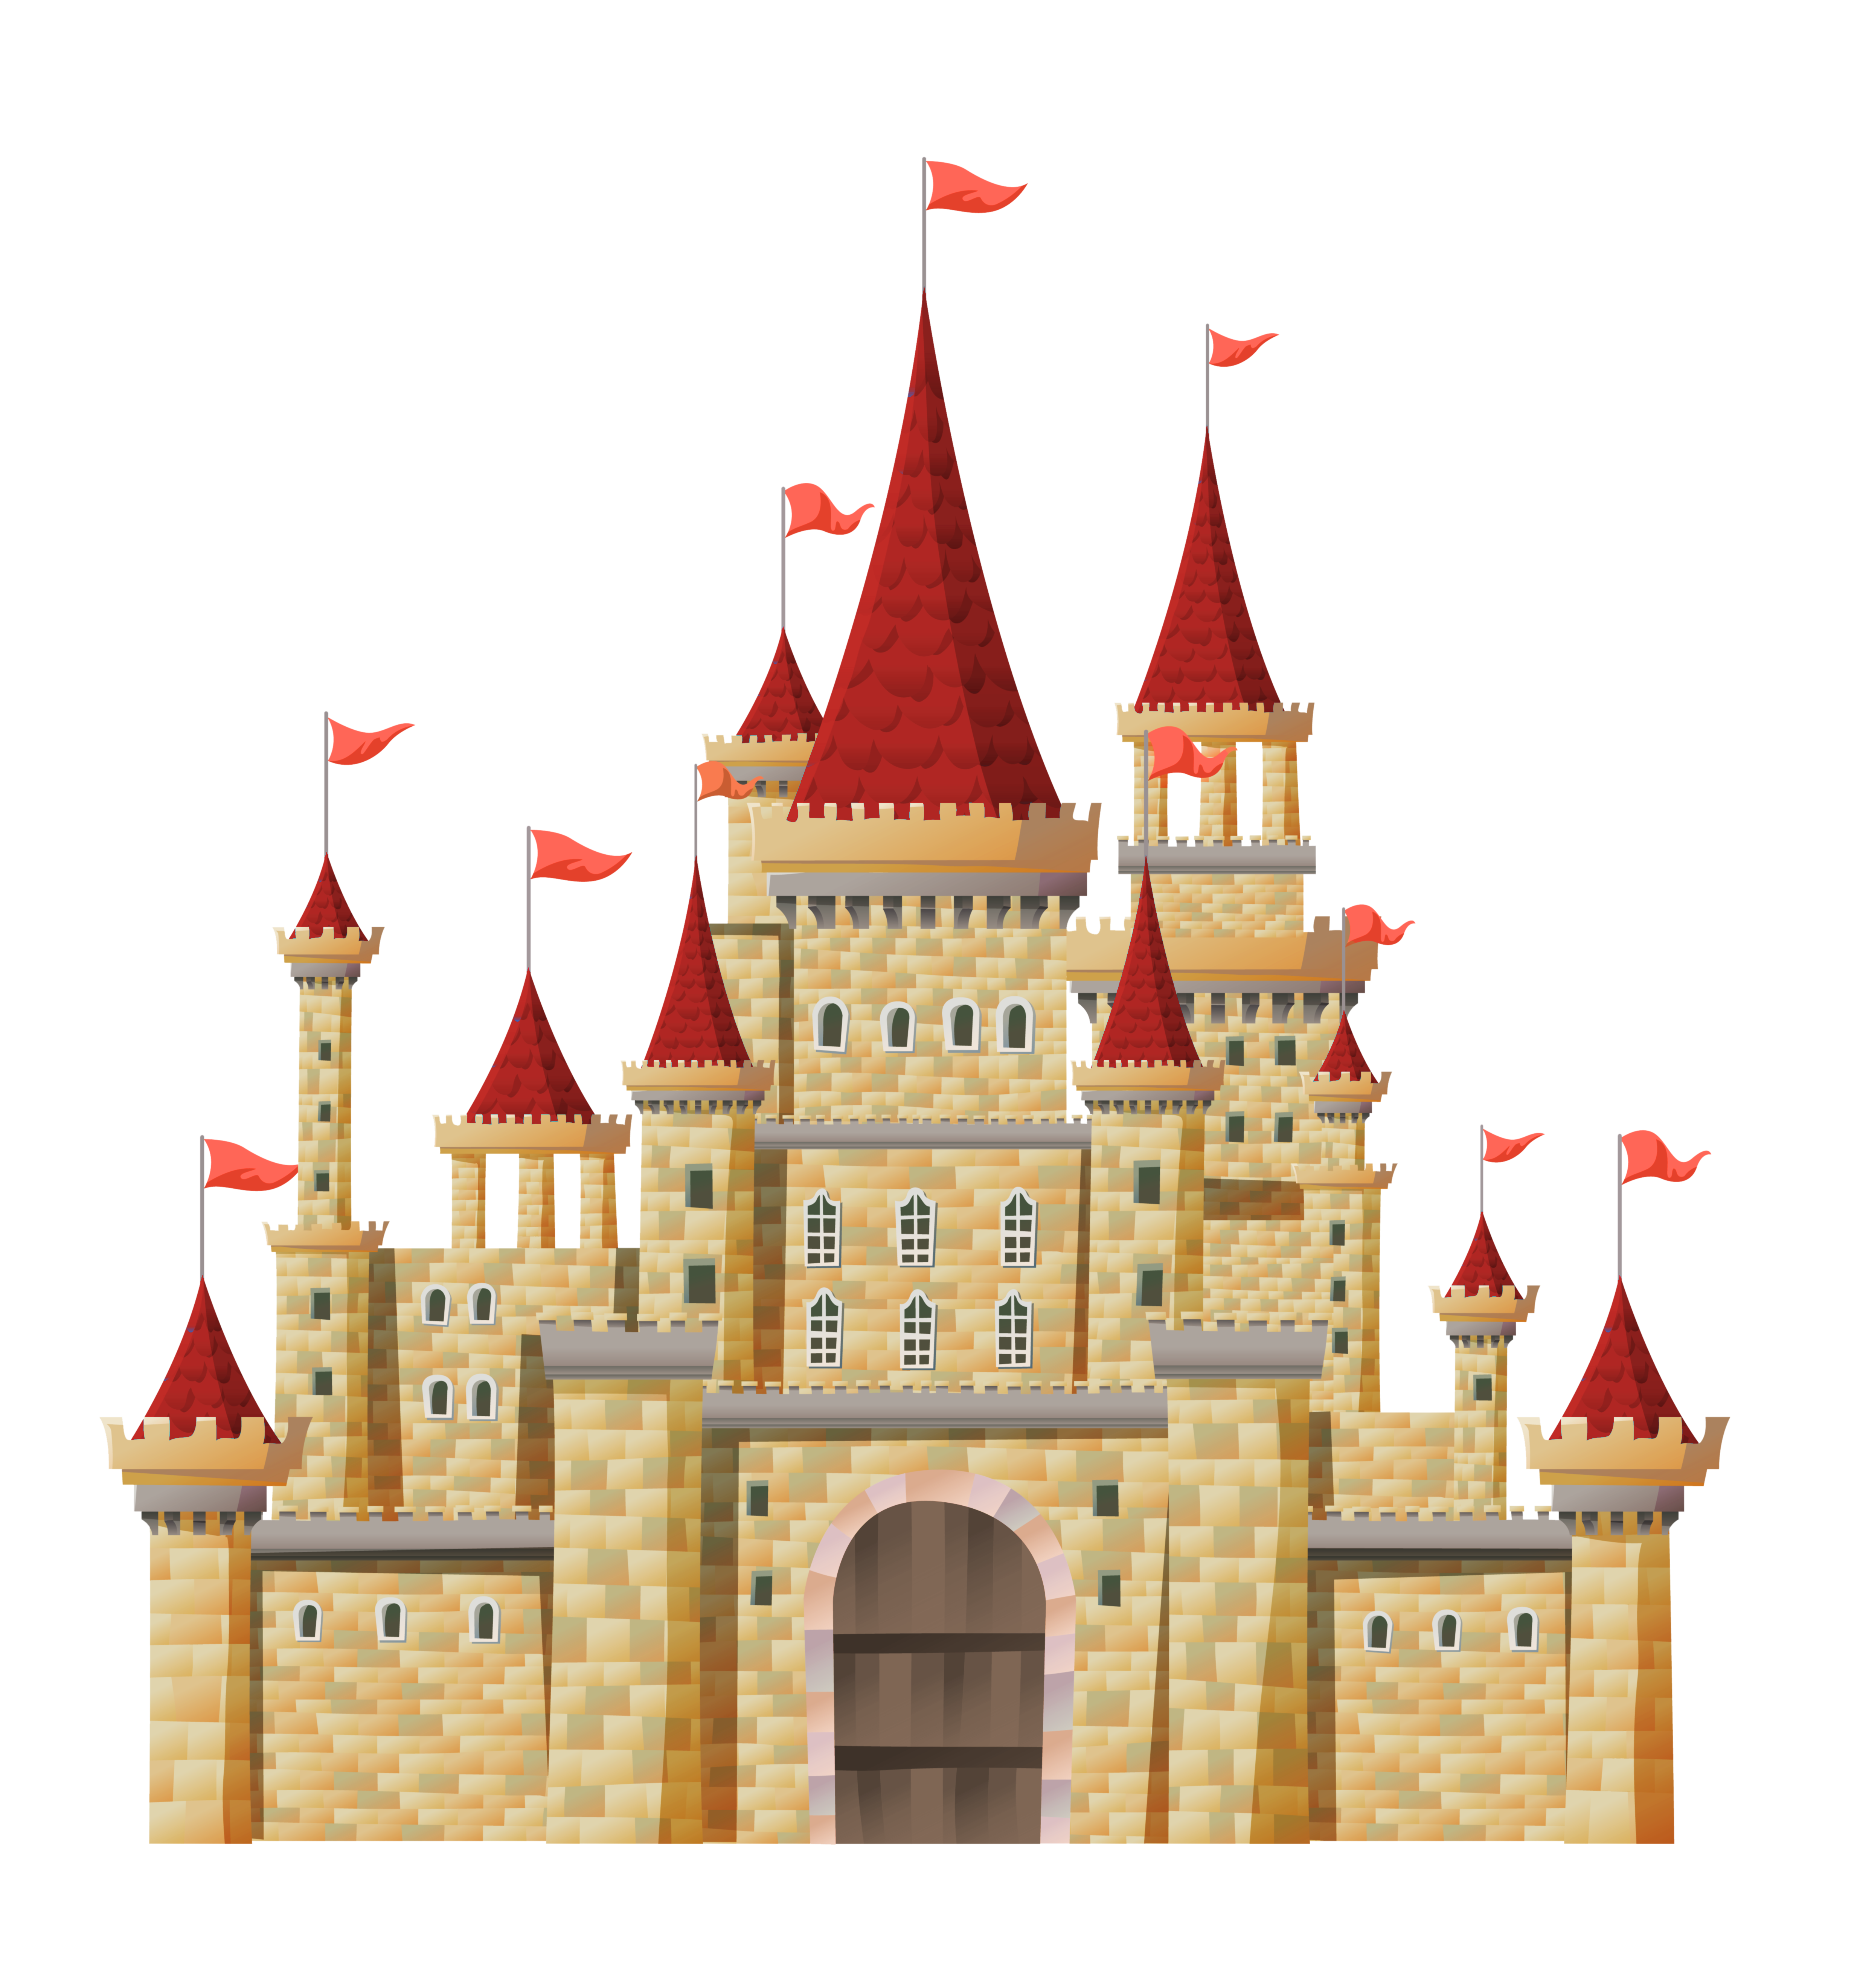 jpg free stock Png clipart gallery yopriceville. Castle transparent